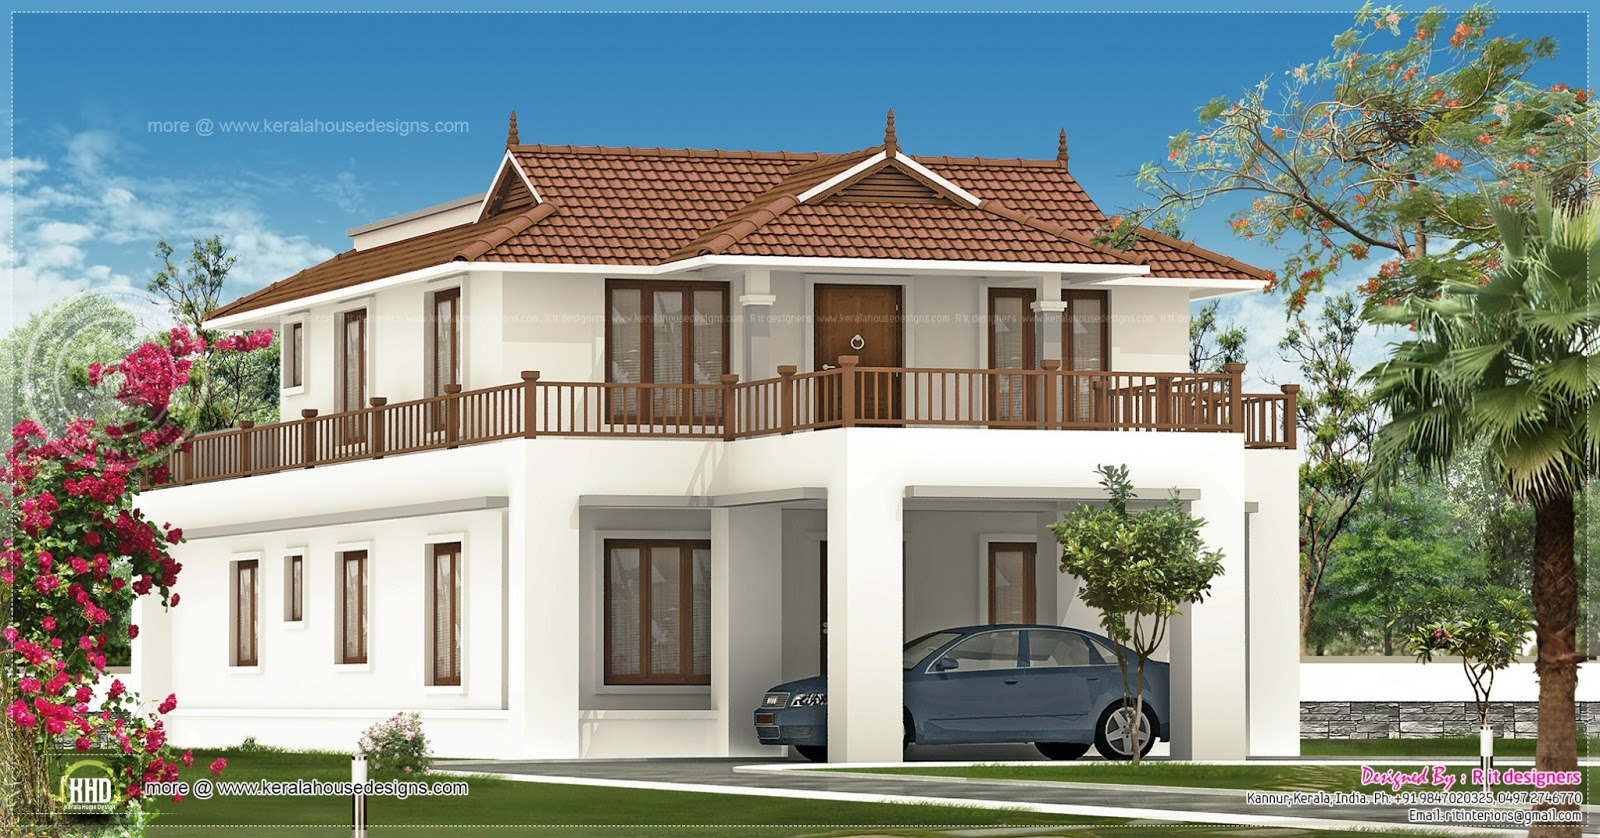 2820 square feet house exterior design | Home Kerala Plans